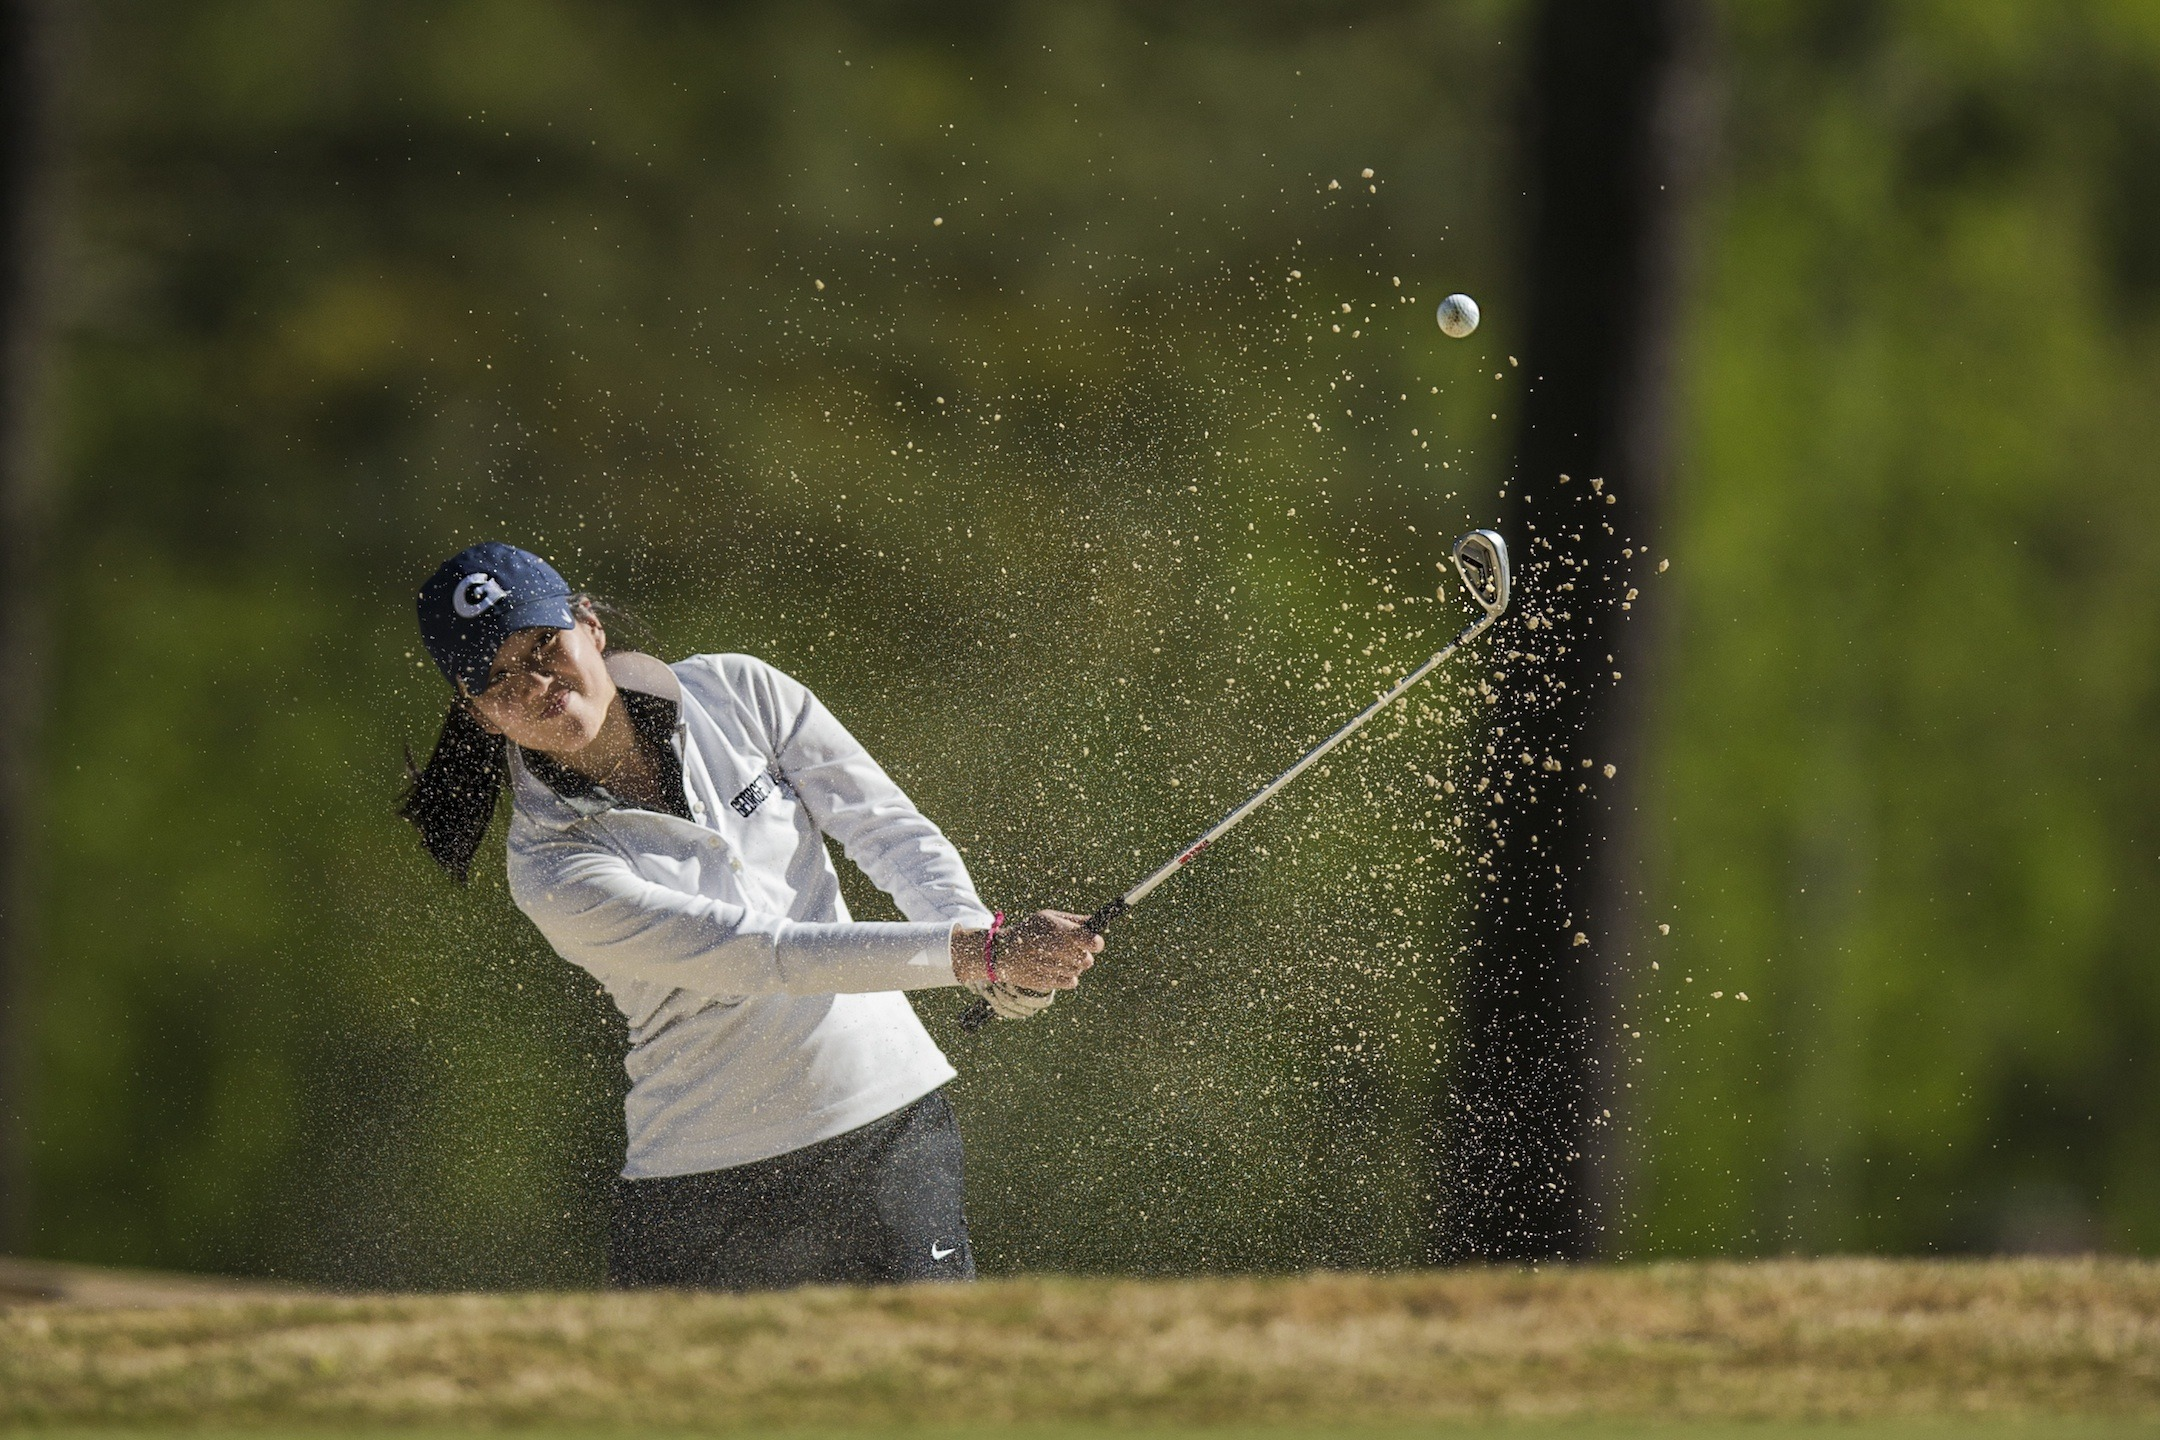 The Georgetown University women's golf team posted a 53-over par 629 over 36 holes and stands in 12th place among 12 teams at the Henssler Financial Intercollegiate, being hosted by Kennesaw State University at Pinetree Country Club in Georgia on Monday.